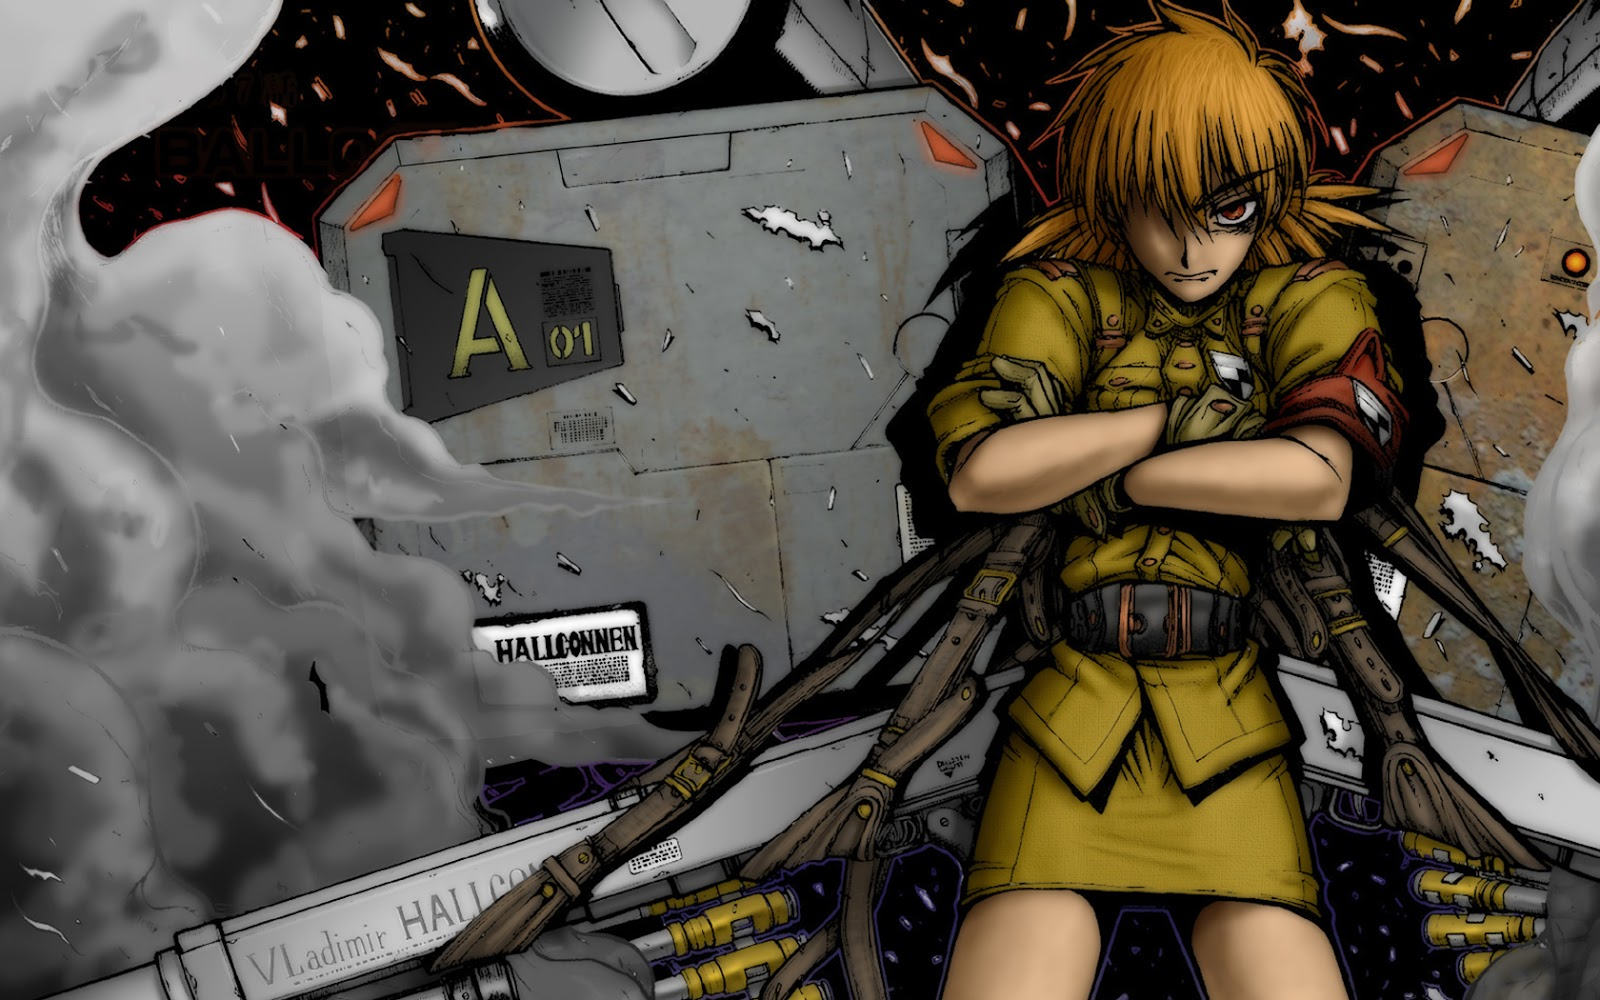 Seras Victoria HD Wallpaper Hellsing OVA Ultimate Big Gung Anime Girl 1600x1000